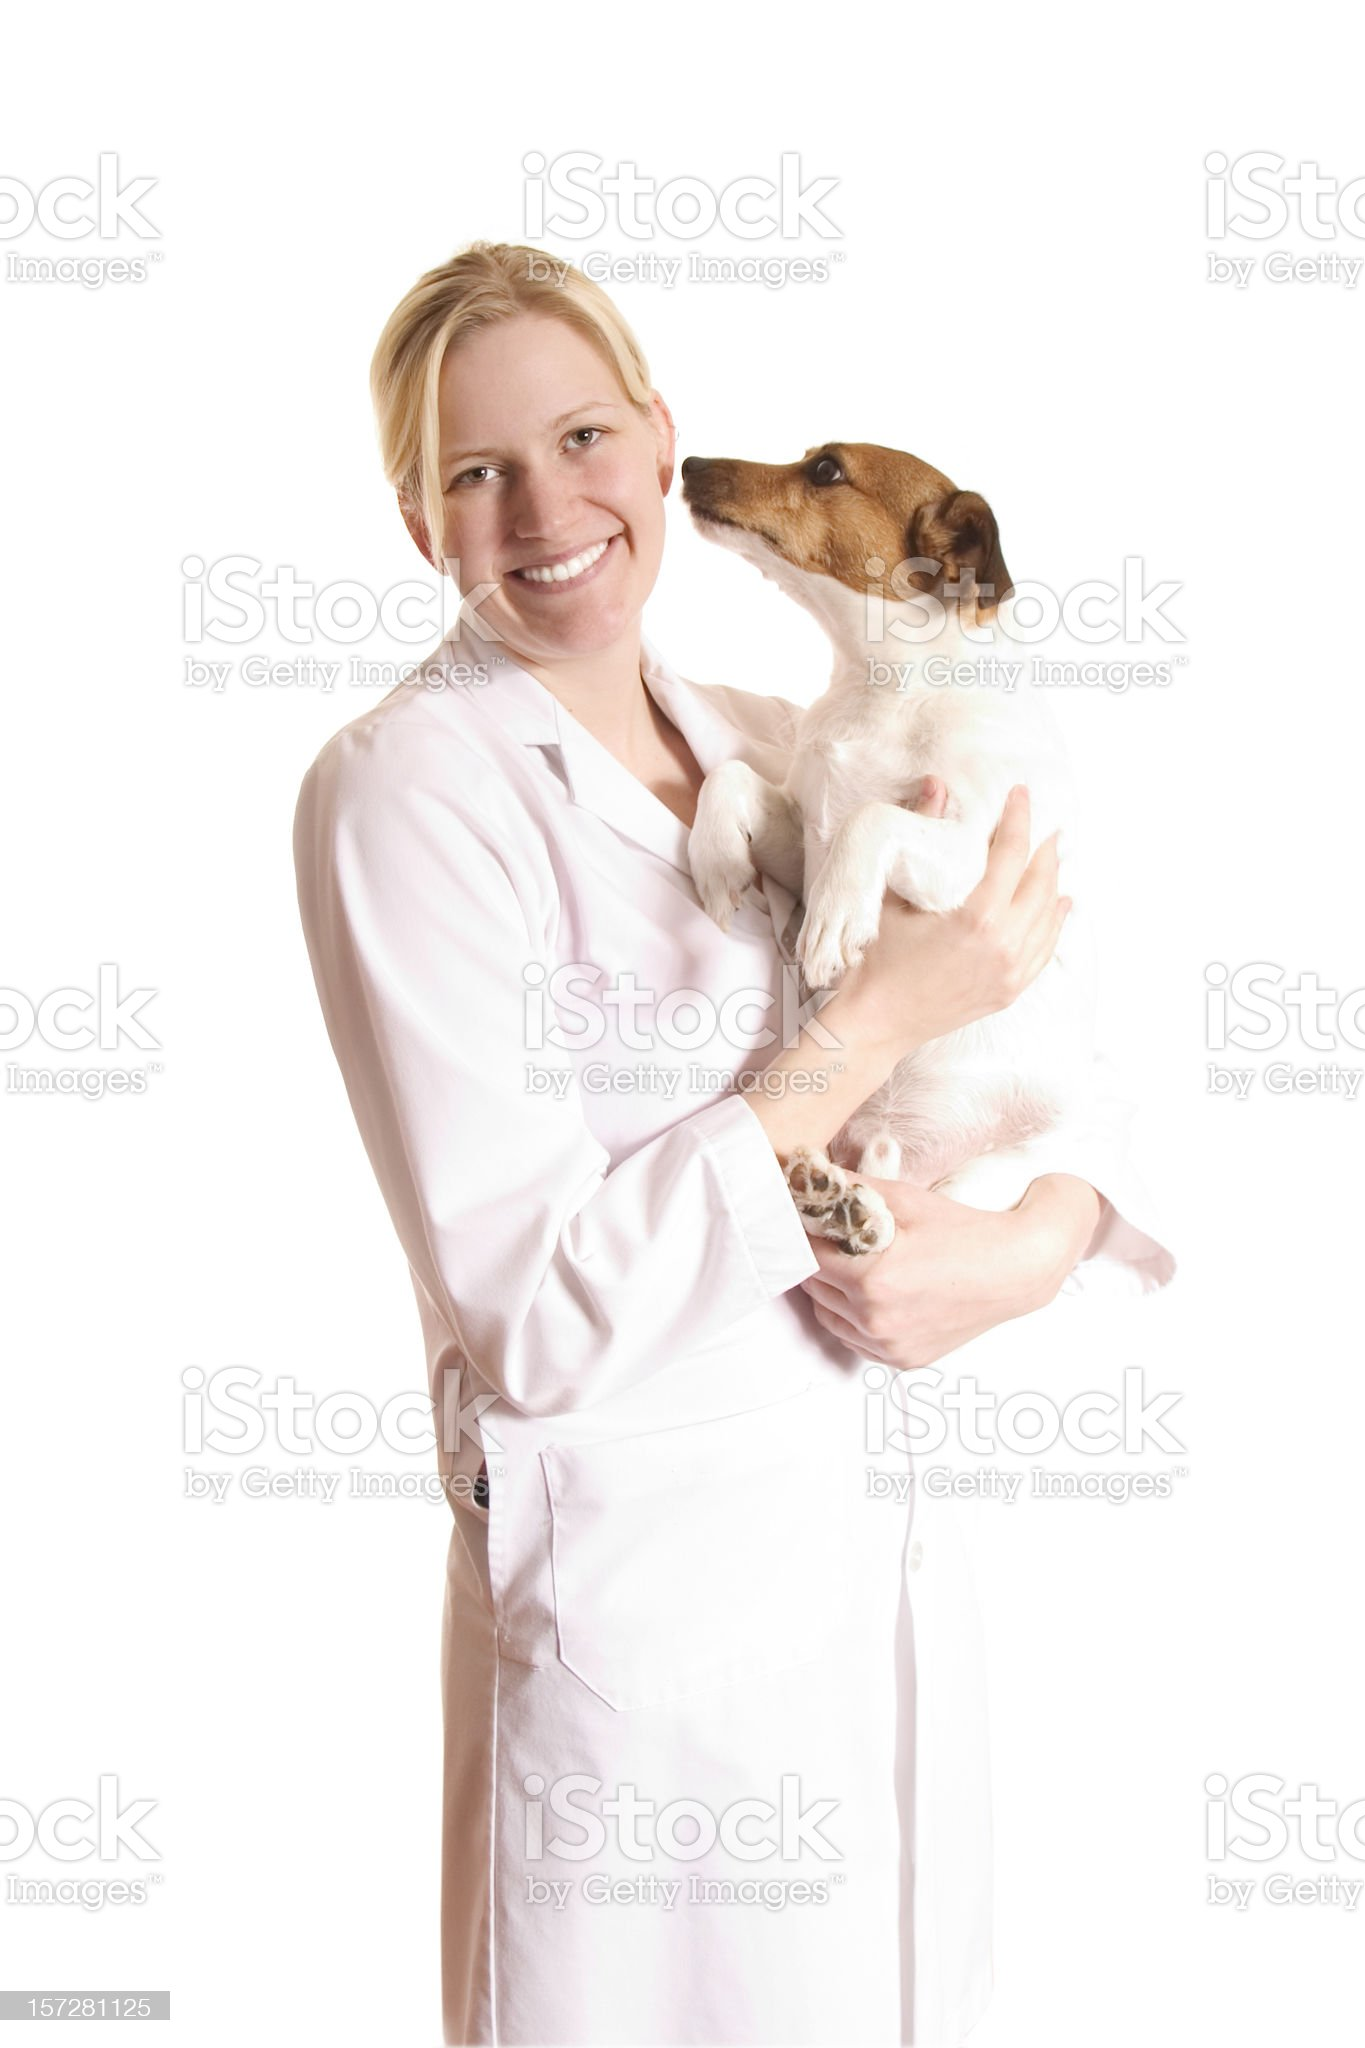 Animal health professional royalty-free stock photo